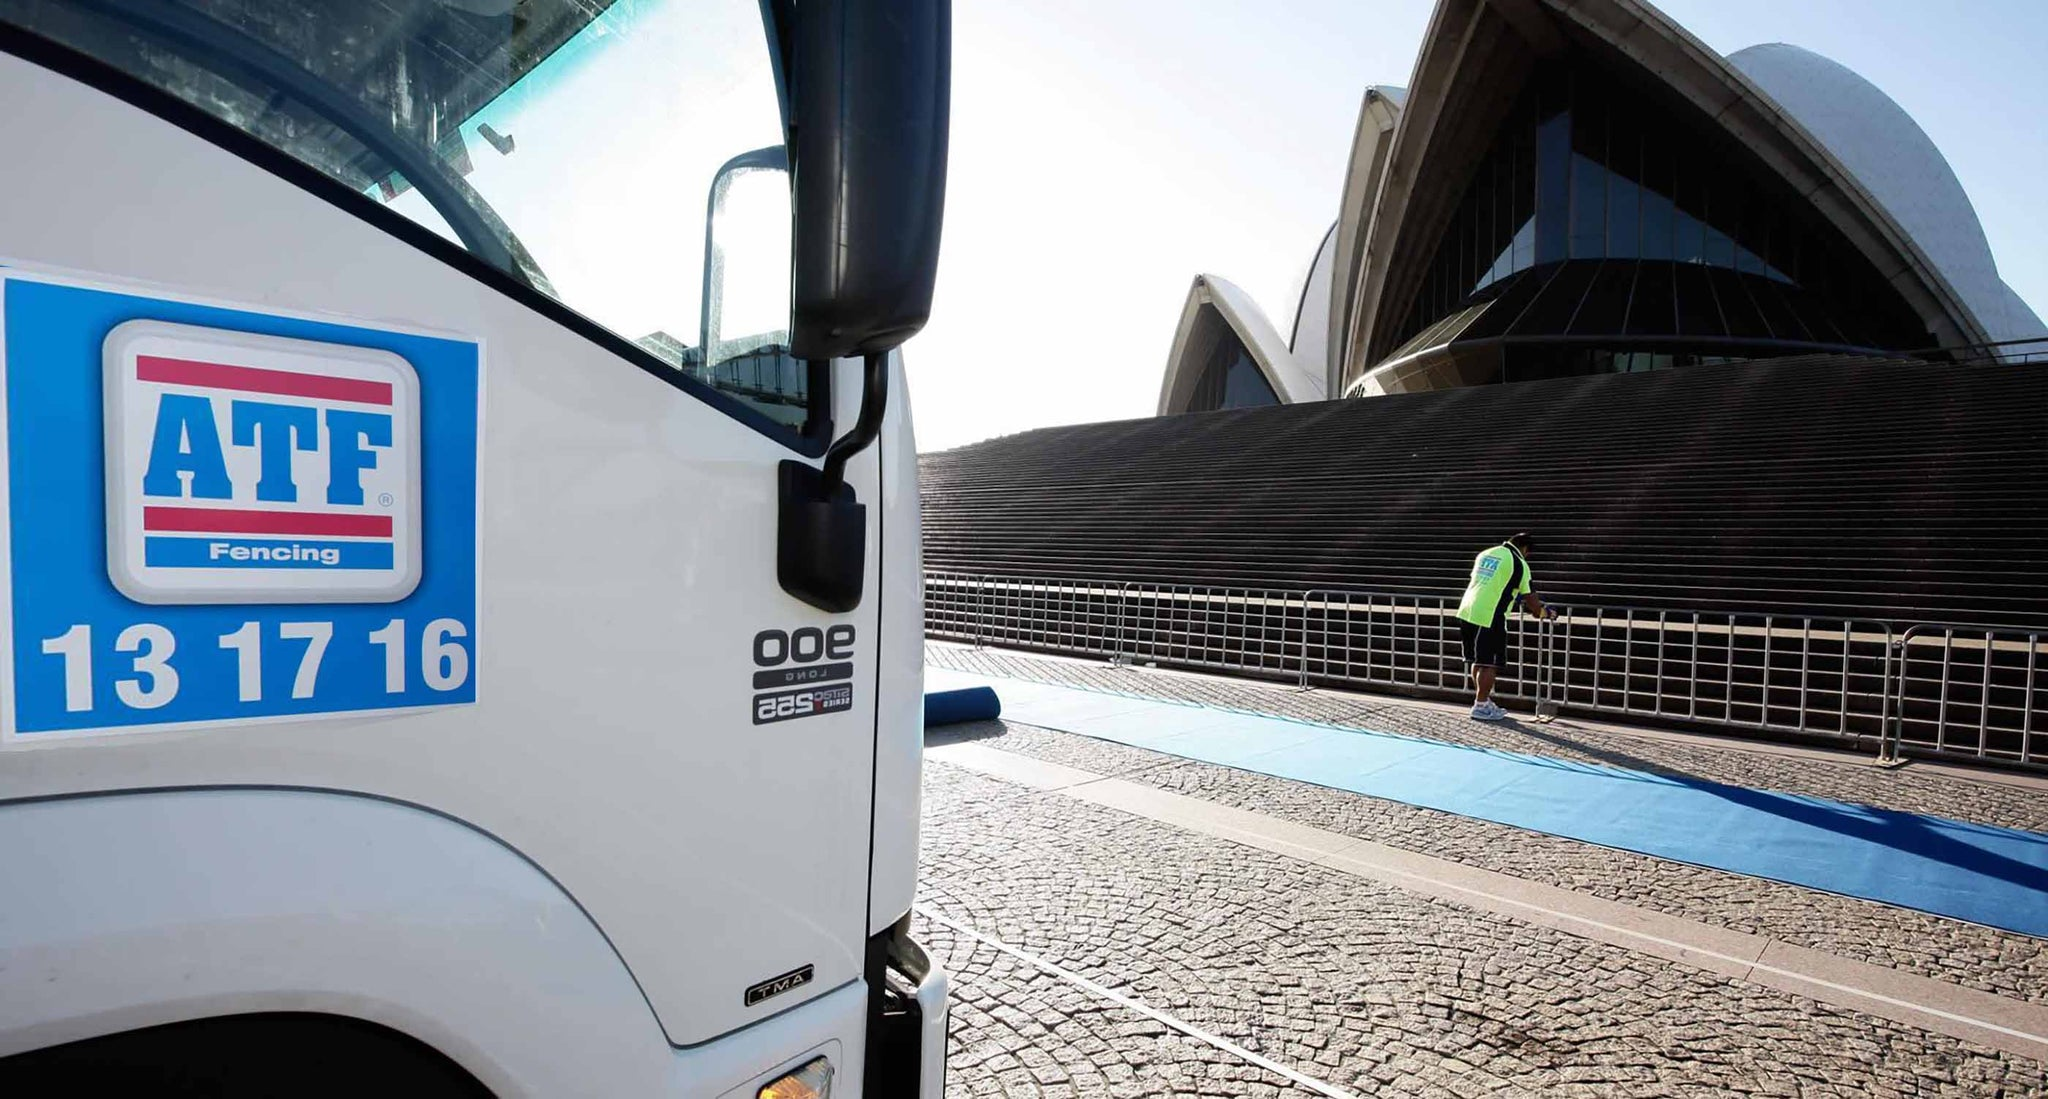 Temporary Fencing Hire at Sydney Opera House. Hire From ATF Fencing